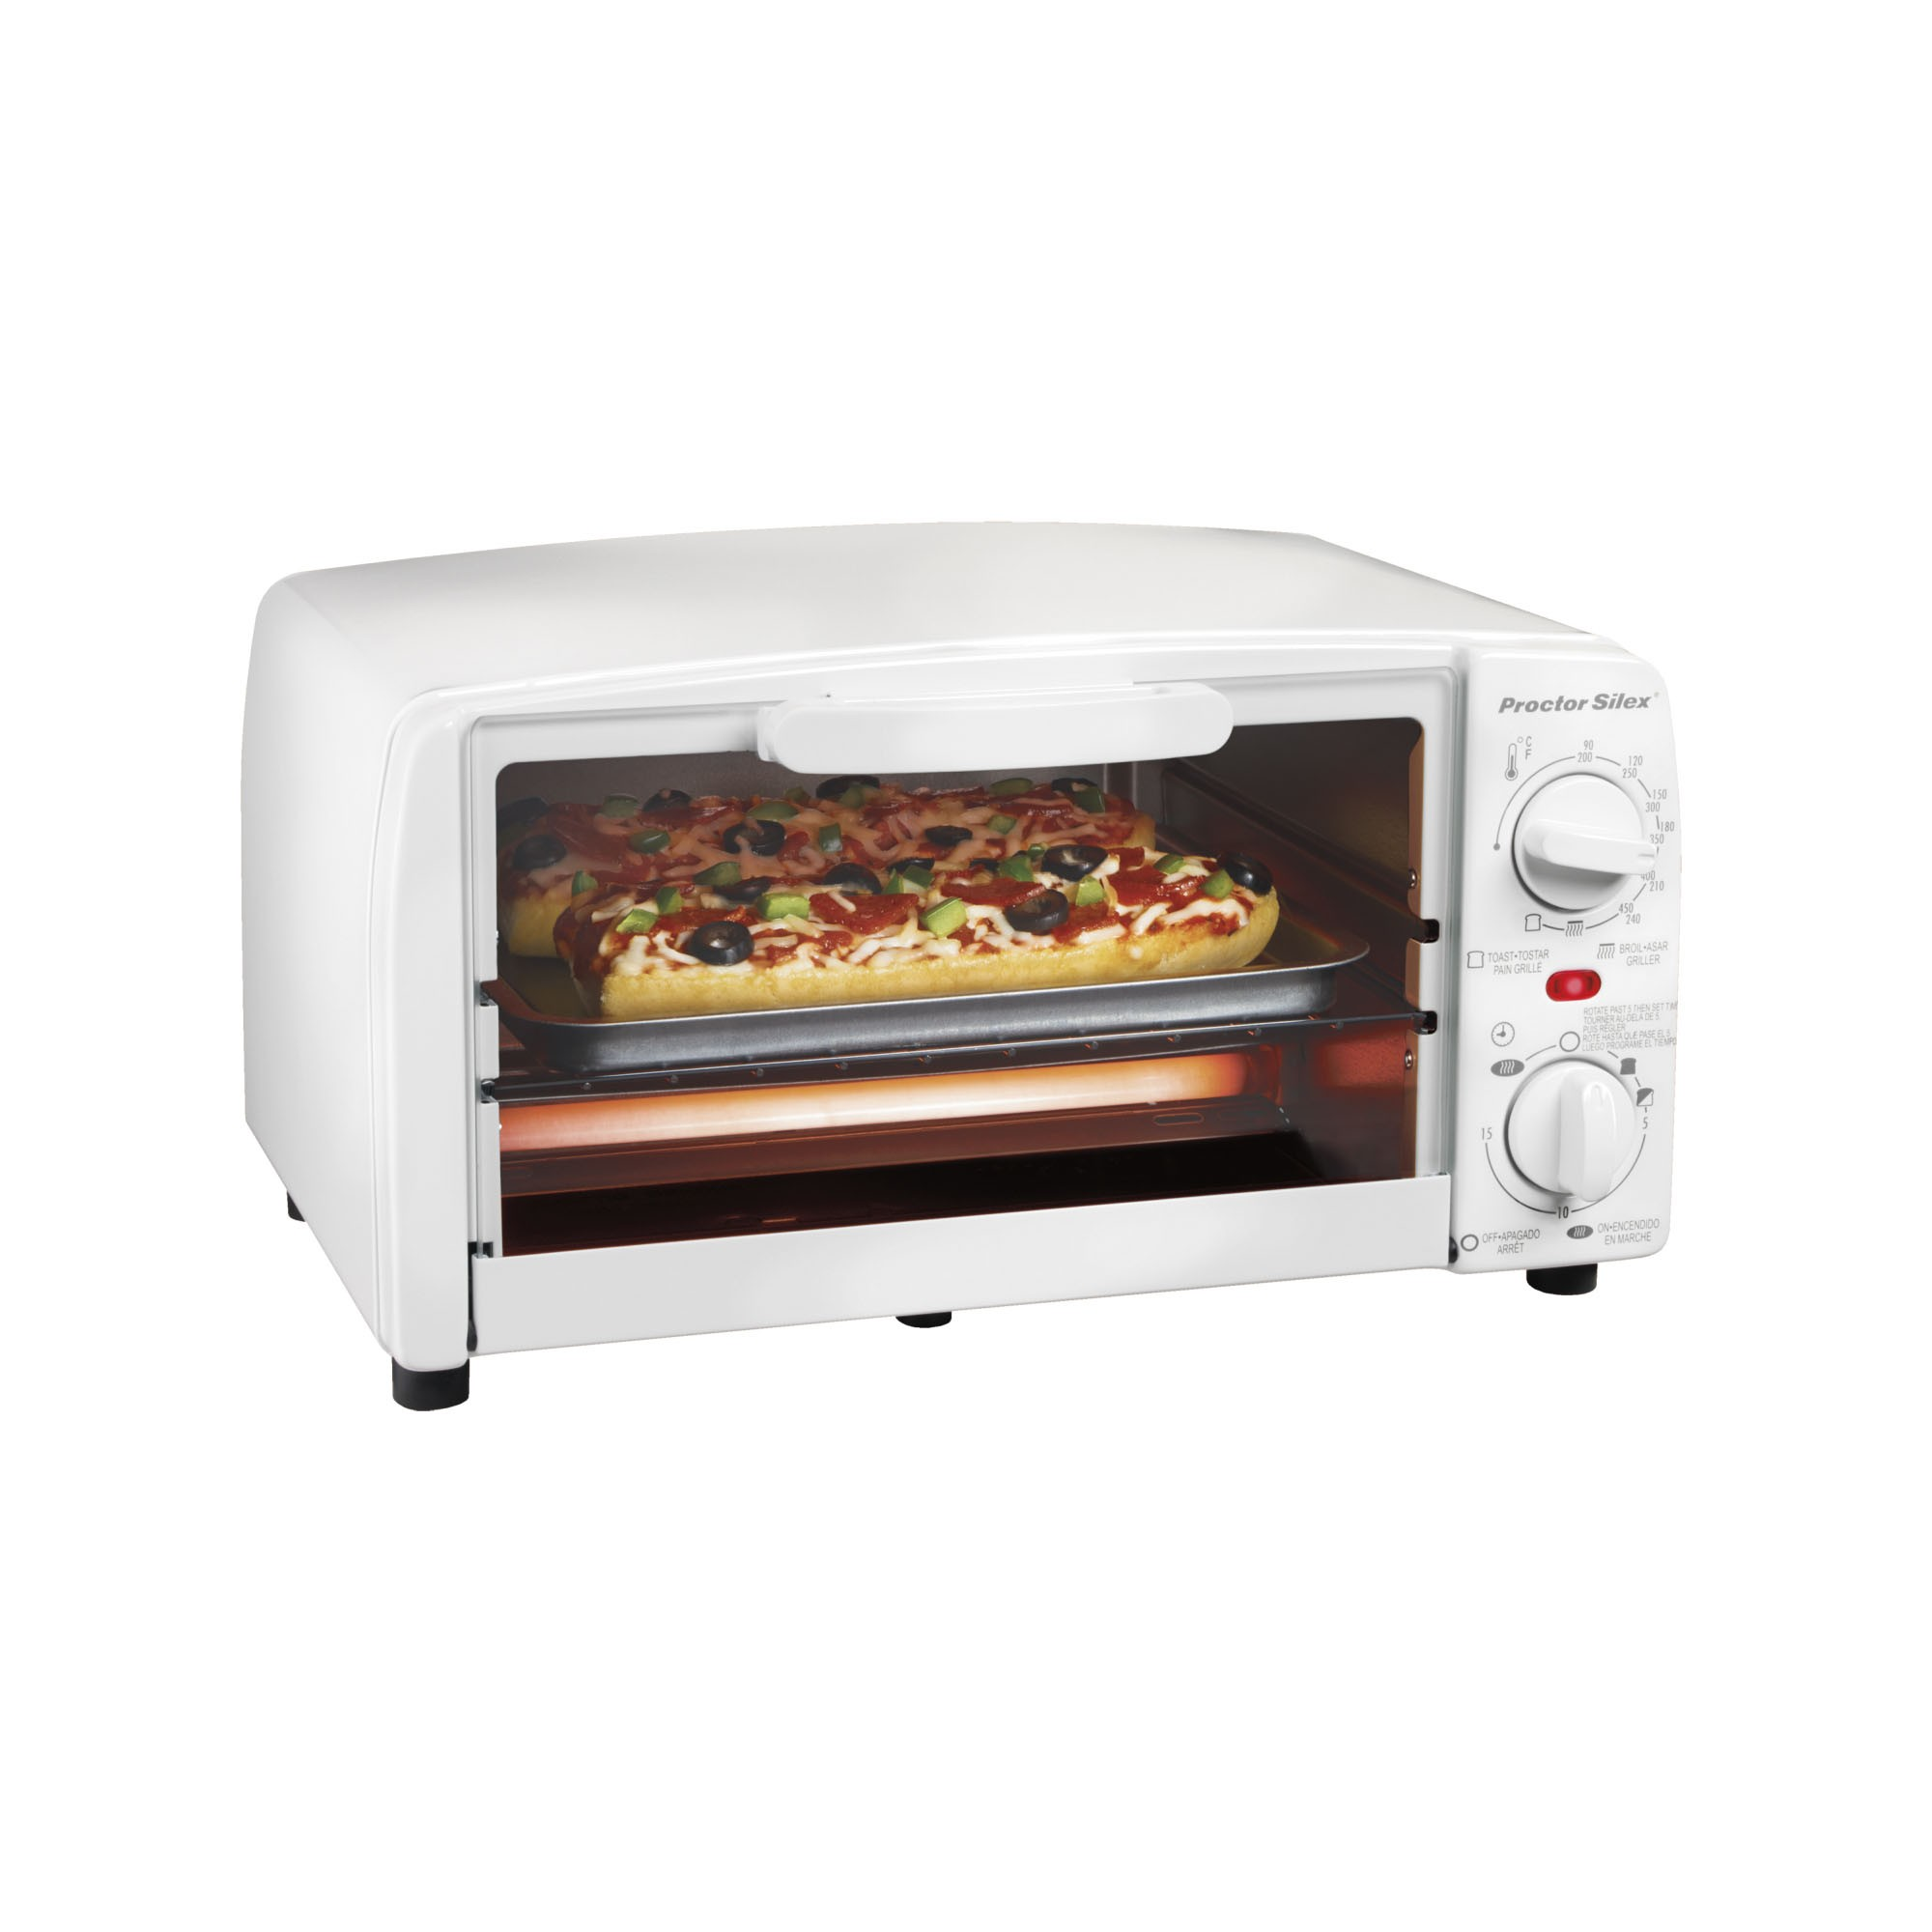 Countertop Oven Broiler : ... Toaster Ovens ?? Proctor Silex Extra-Large Toaster Oven Broiler